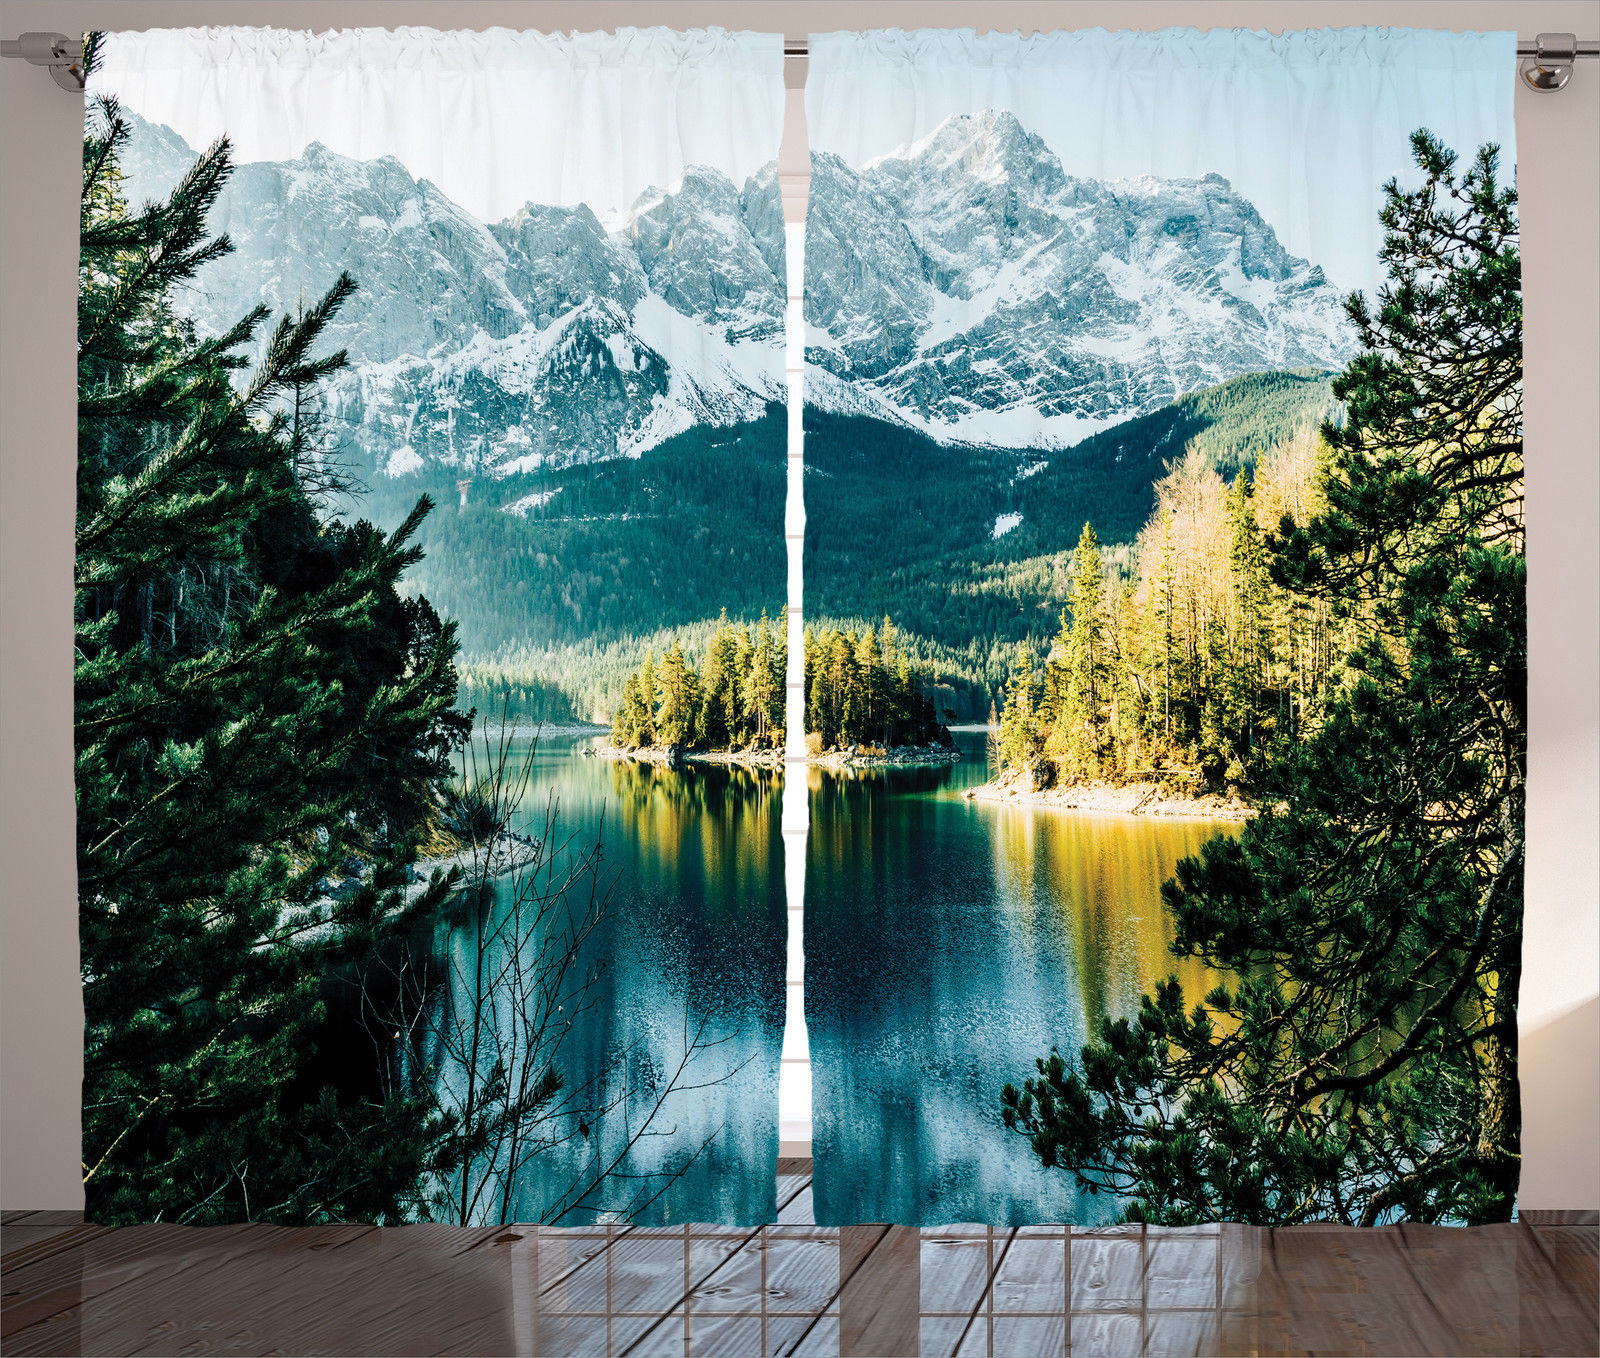 Click here to buy Lake House Decor Curtains 2 Panels Set, Mountain Lake In Northern Germany With Frozen Peaks And Water In Winter Season Life, Living Room... by Kozmos.